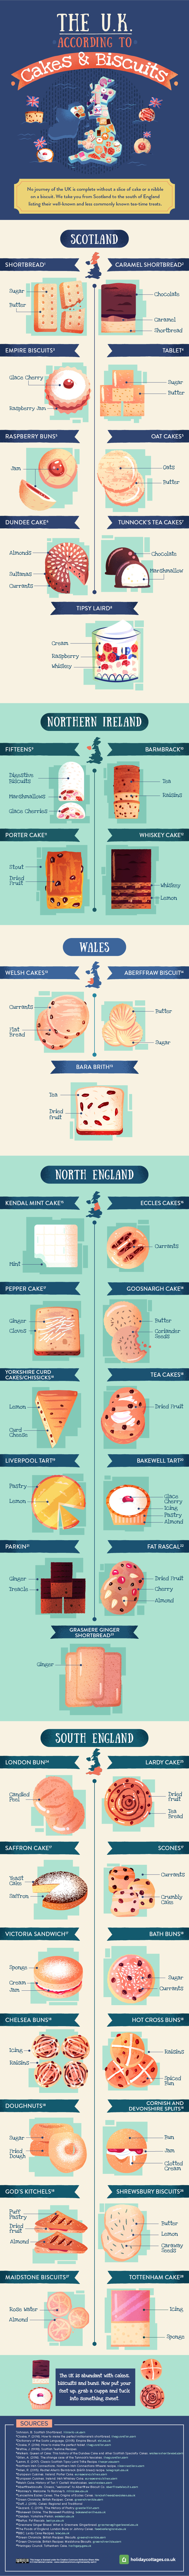 Tales of The Great British Sweet Tooth - Infographic